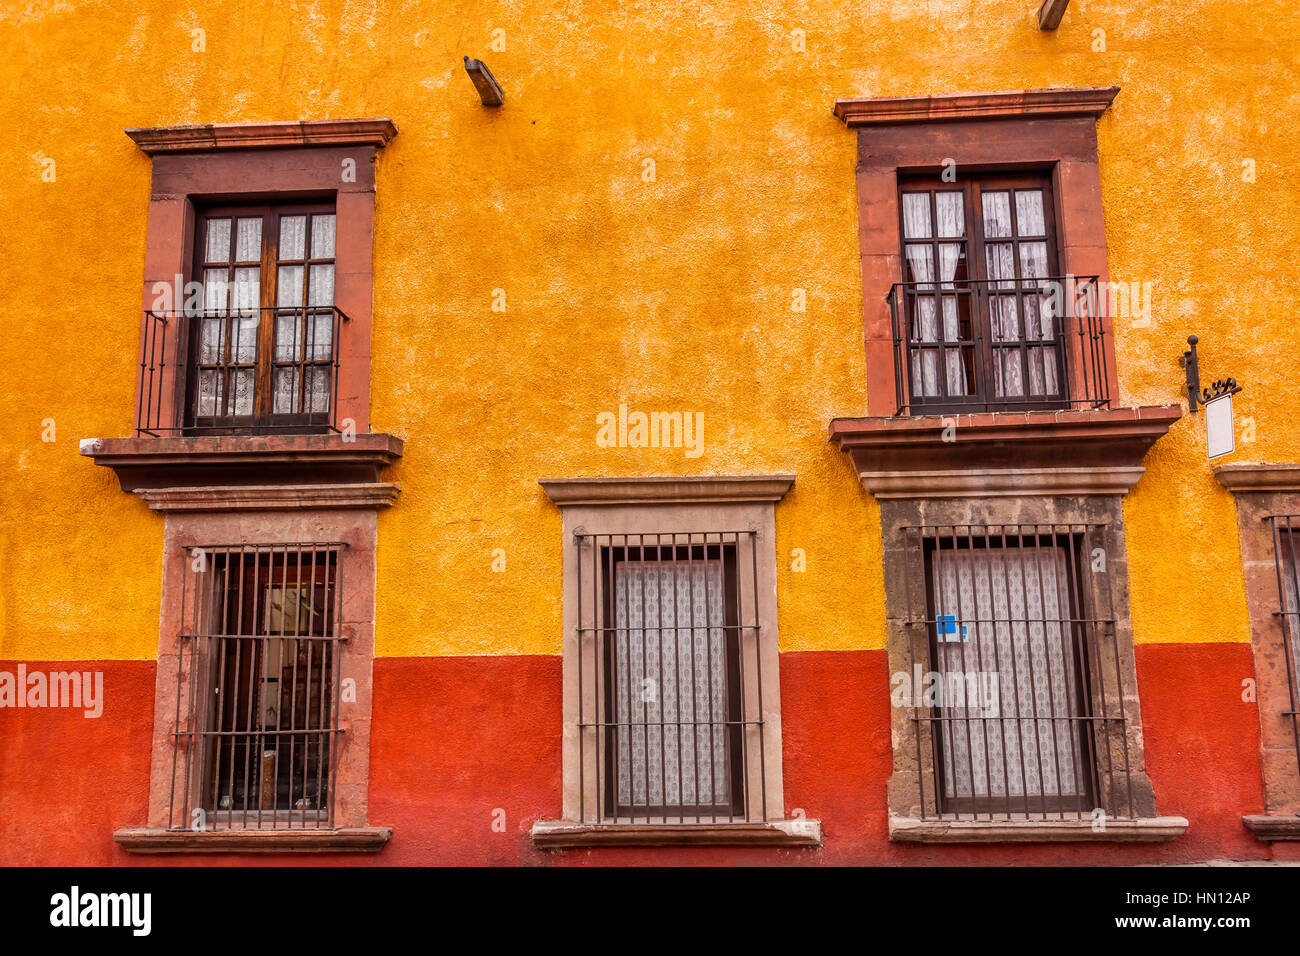 Gelb Rot Wand Braun Windows Metall Tore San Miguel De Allende Mexiko